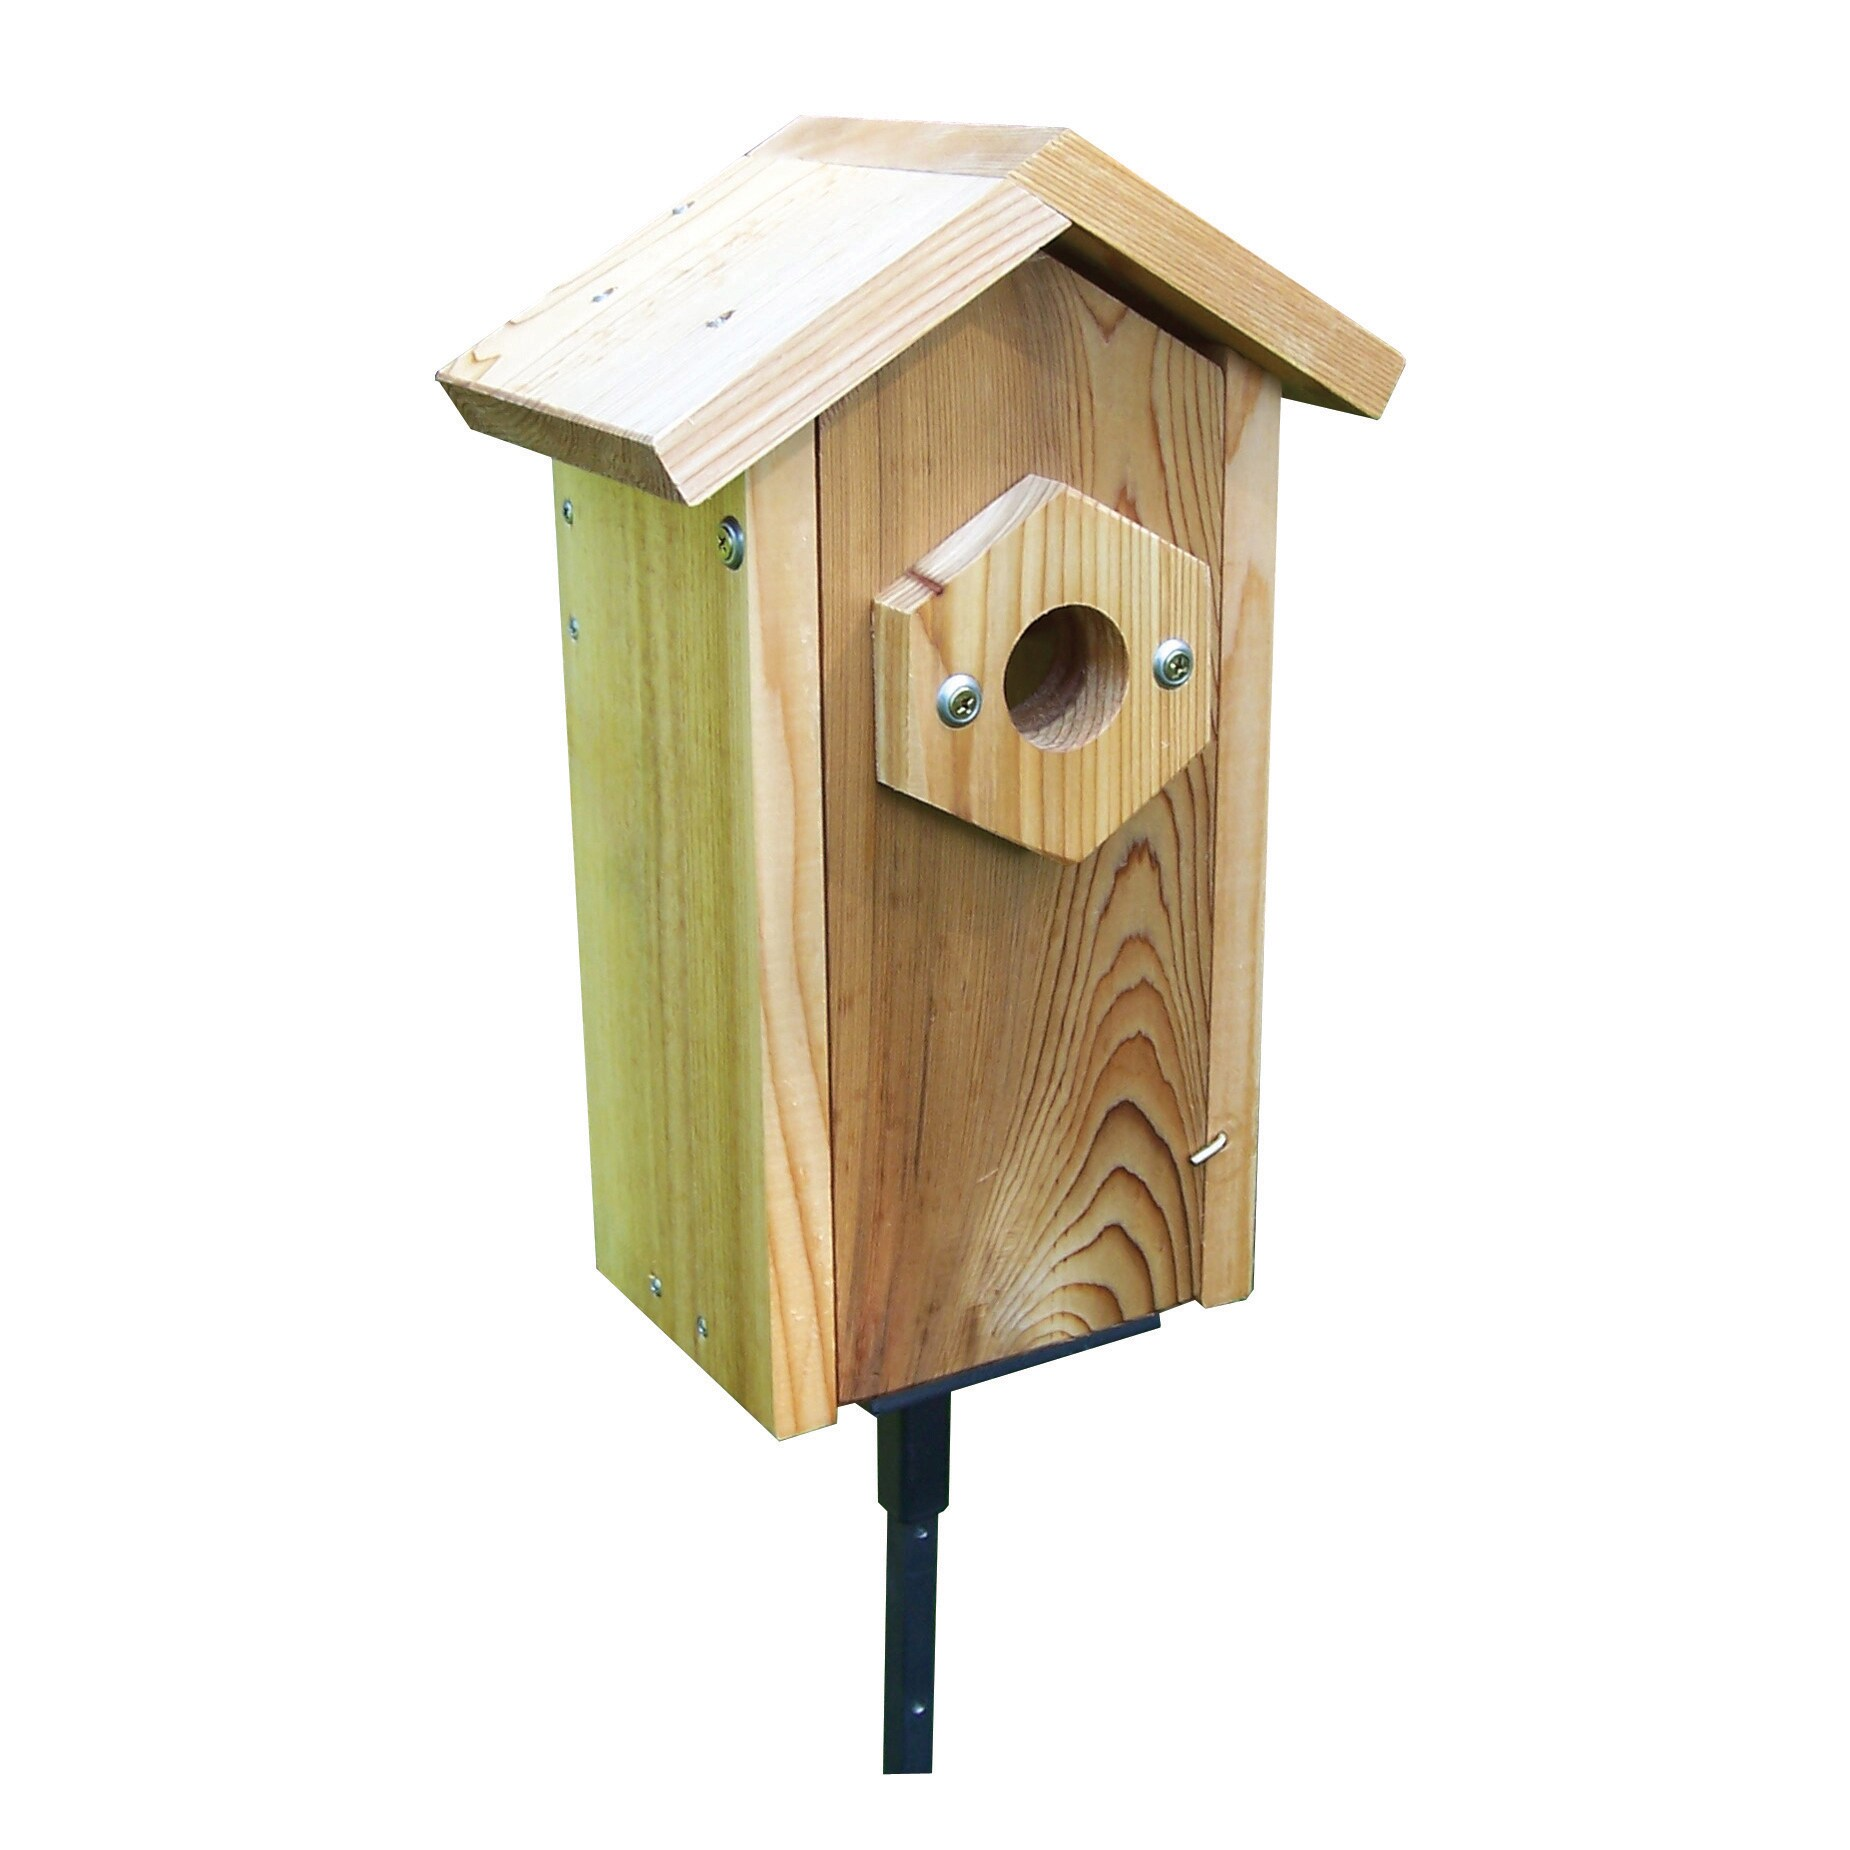 Stovall Window Viewing Nest Box Pedestal Birdhouse (Brown...